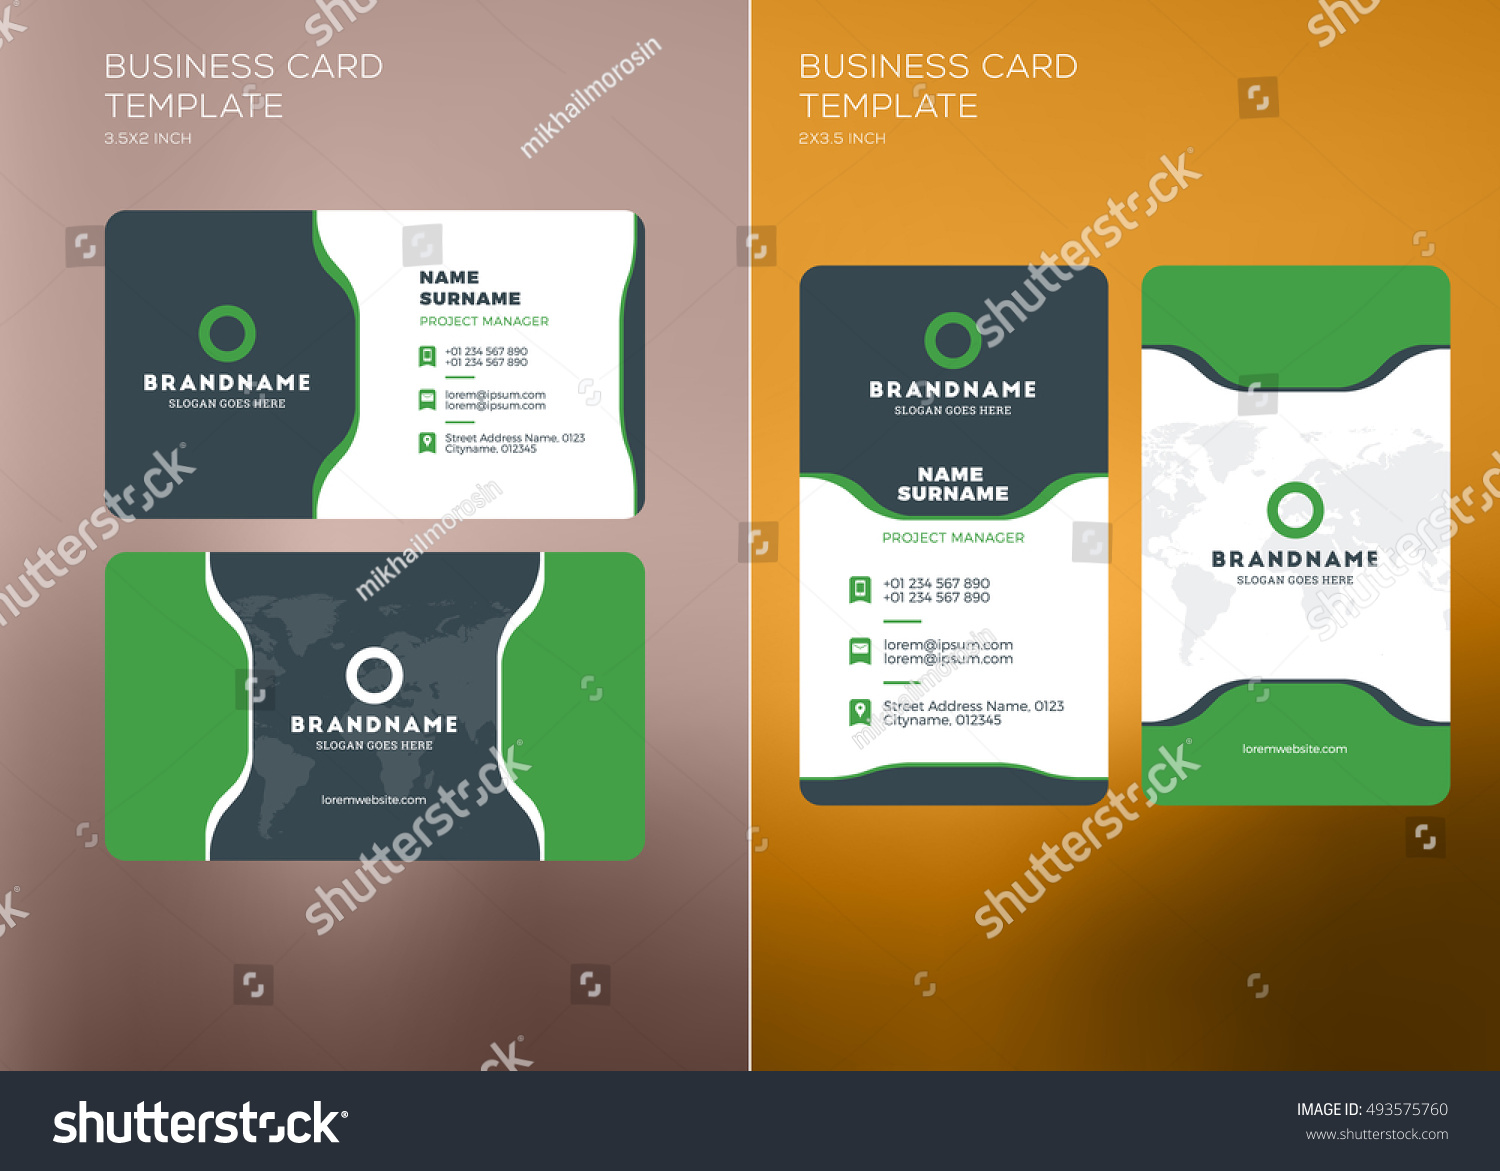 Free Template Business Cards To Print